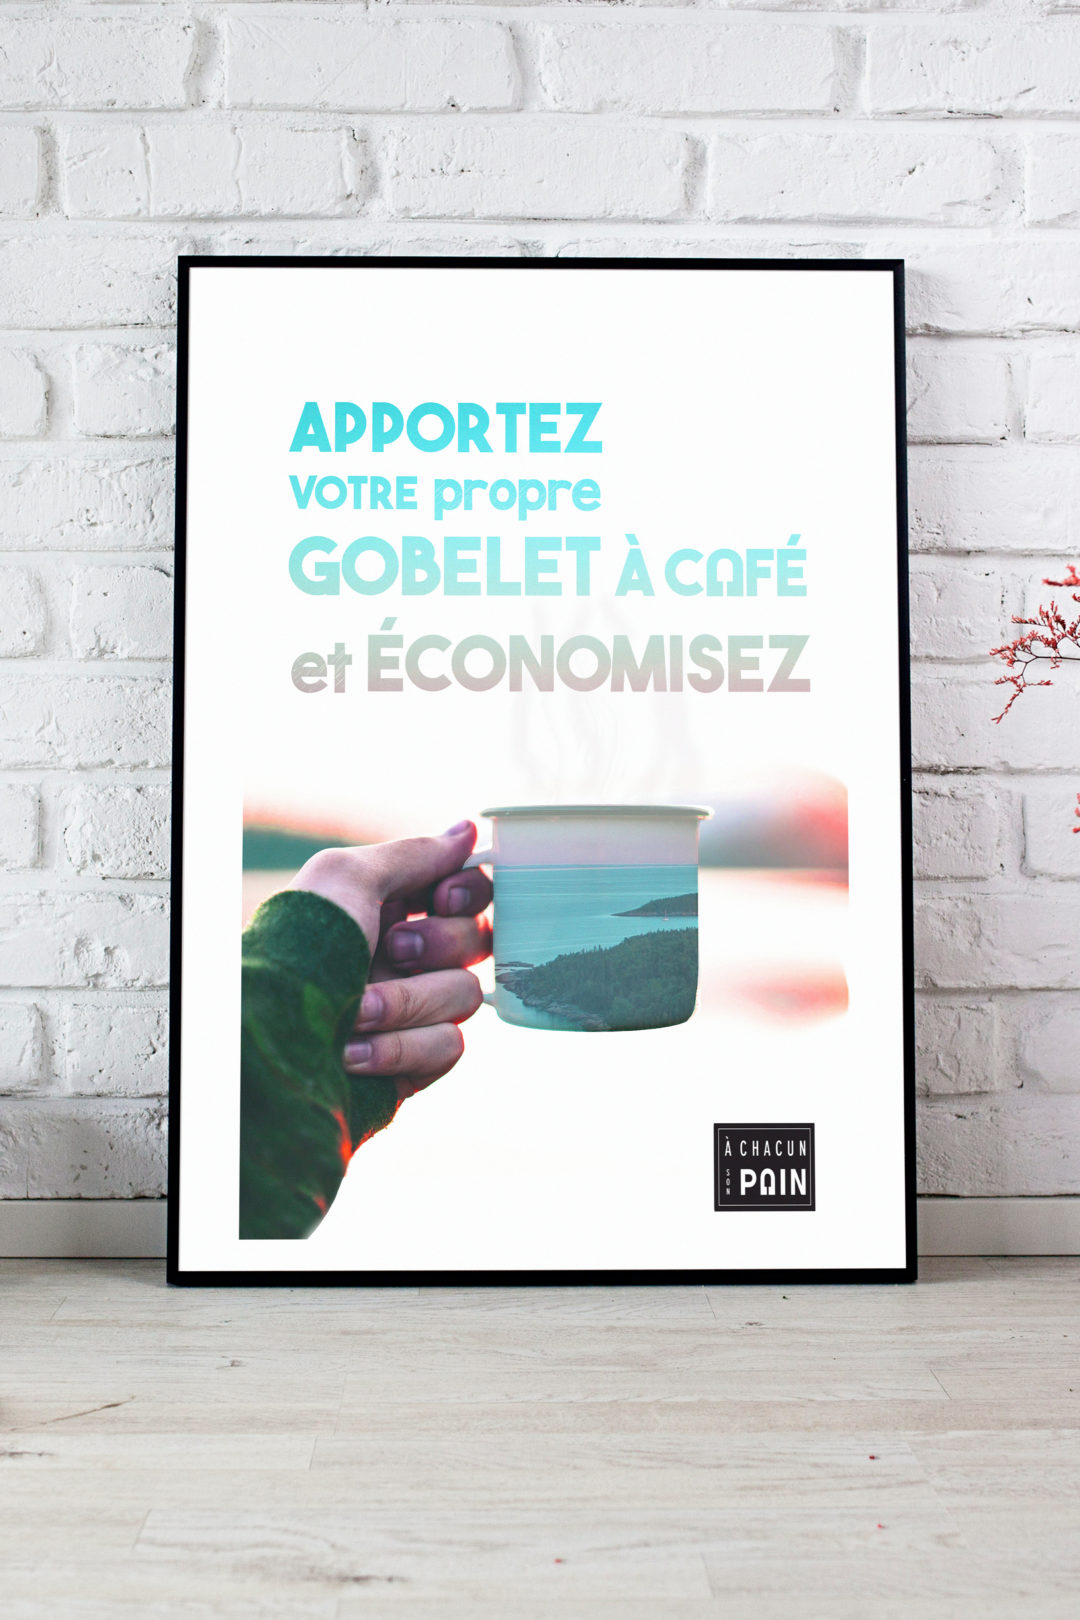 À Chacun Son Pain -Advertising Poster